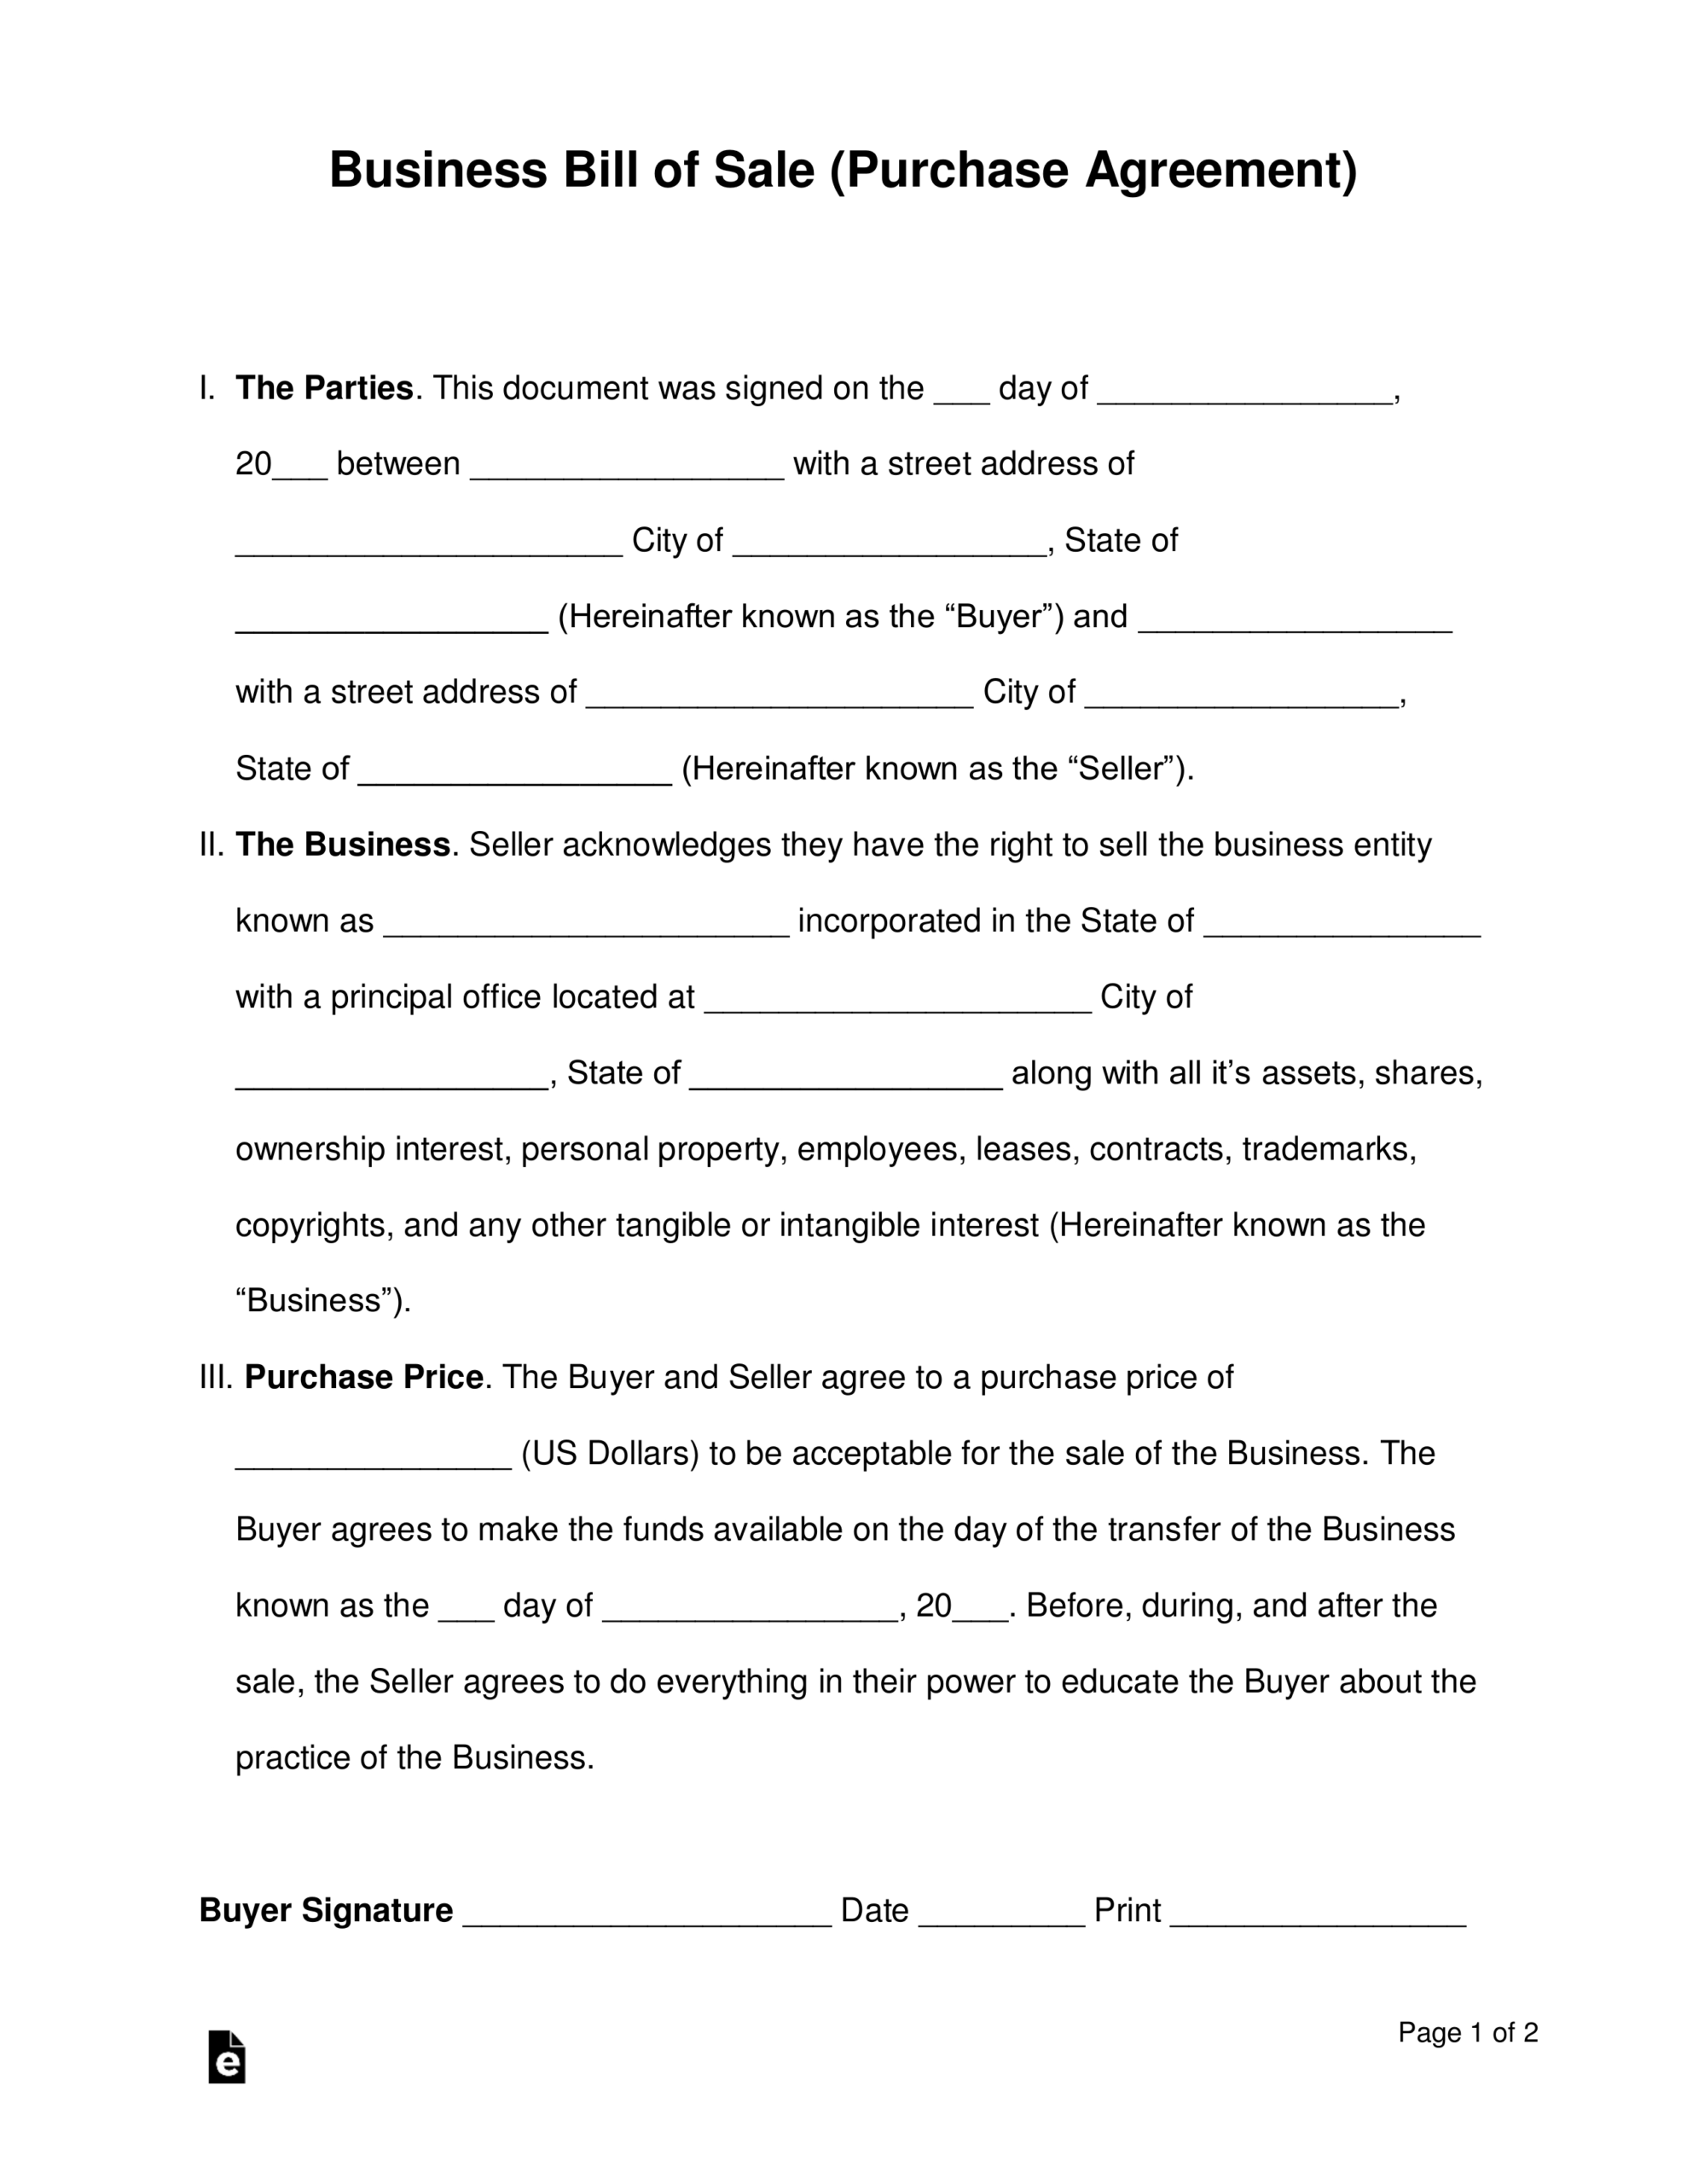 Free Business Bill Of Sale Form (Purchase Agreement) - Word In Free Business Purchase Agreement Template